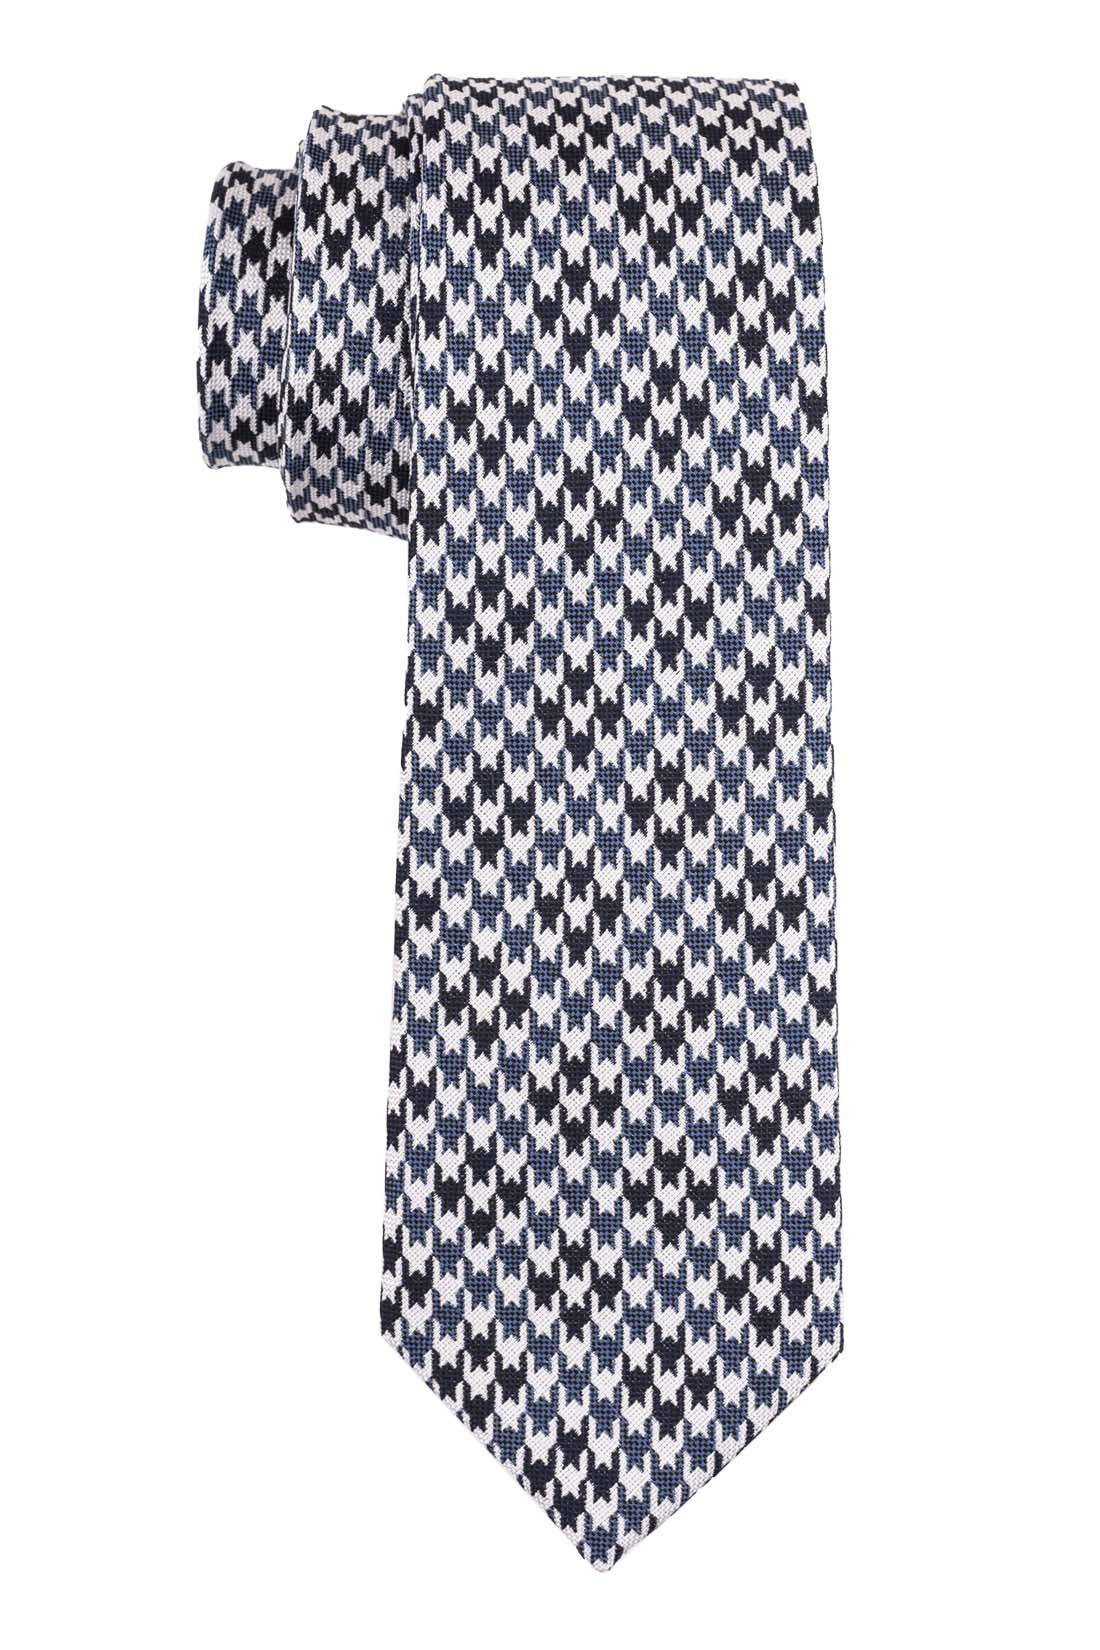 Houndstooth  White and Blue Plaid Necktie